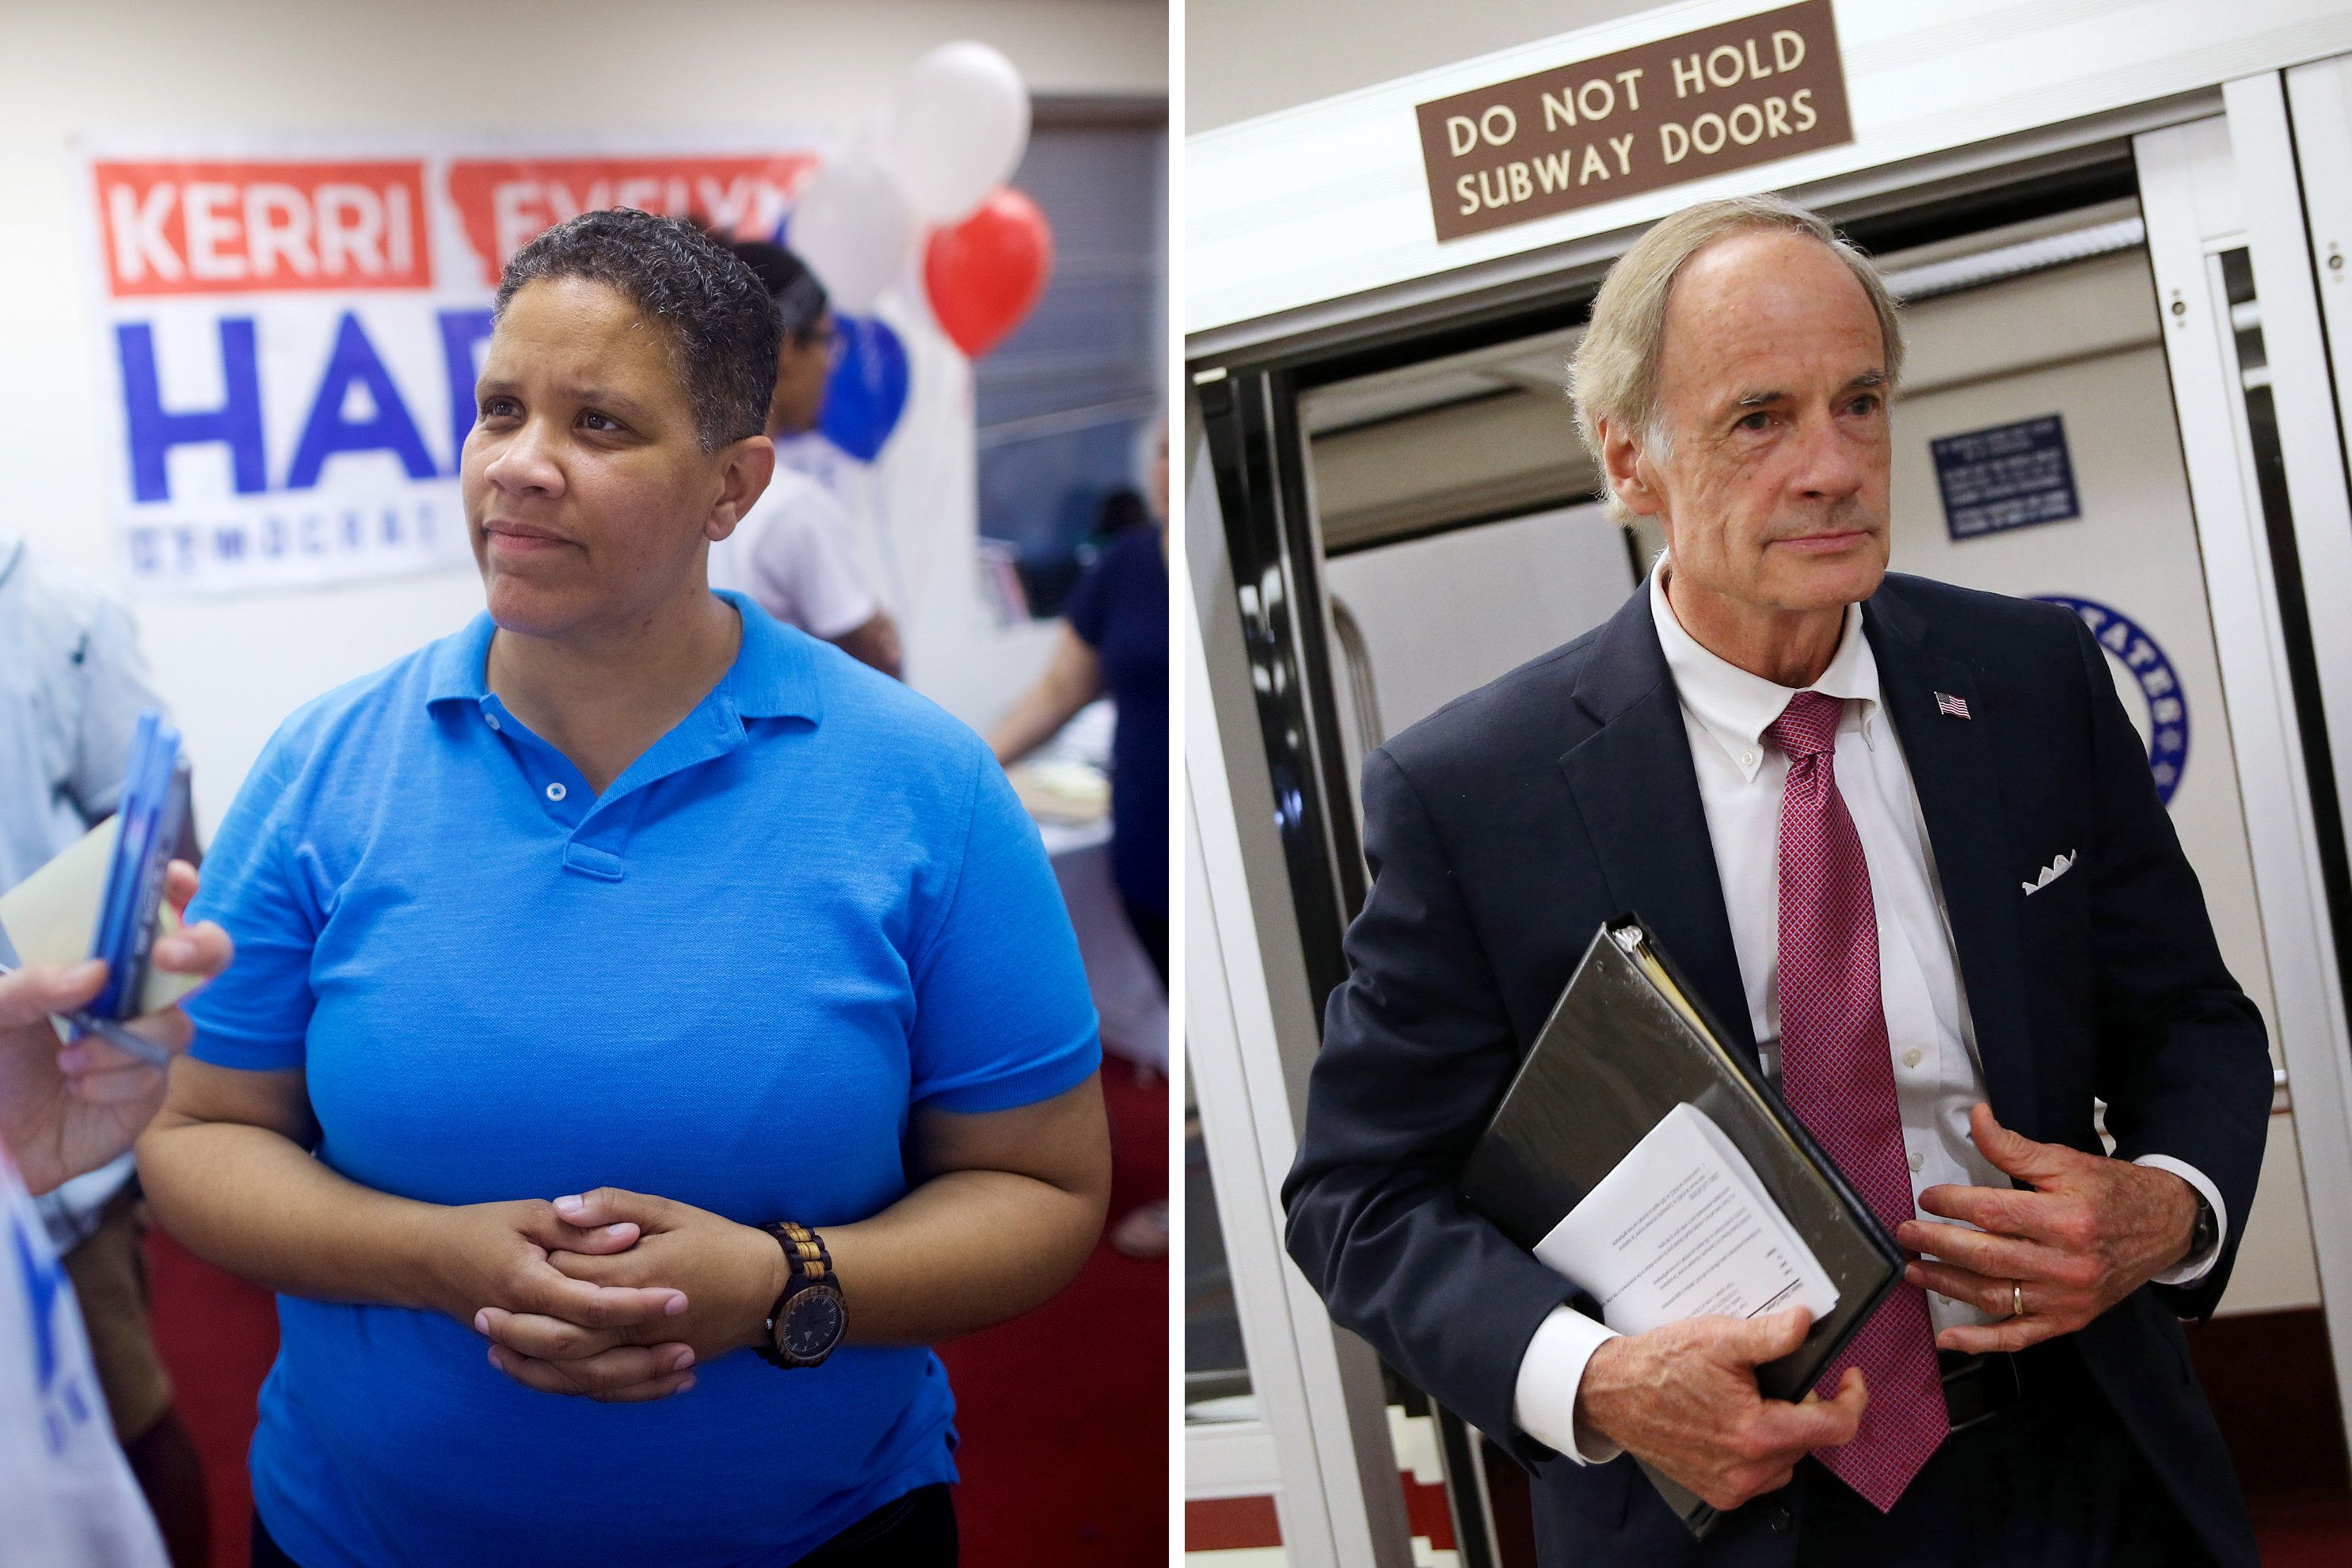 LEFT: Kerri Harris, a veteran and community activist, who is challenging Senator Carper for the Democratic nomination, speaks with a supporter inside her just open campaign headquarters in Wilmington, DE July 20, 2018. RIGHT:' Sen. Tom Carper (D-DE) speaks to reporters as he arrives for the weekly Senate Democrat's policy luncheon, on Capitol Hill, on July 24, 2018 in Washington, DC.  (Photo by Mark Makela for The Washington Post via Getty Images; Al Drago/Getty Images)